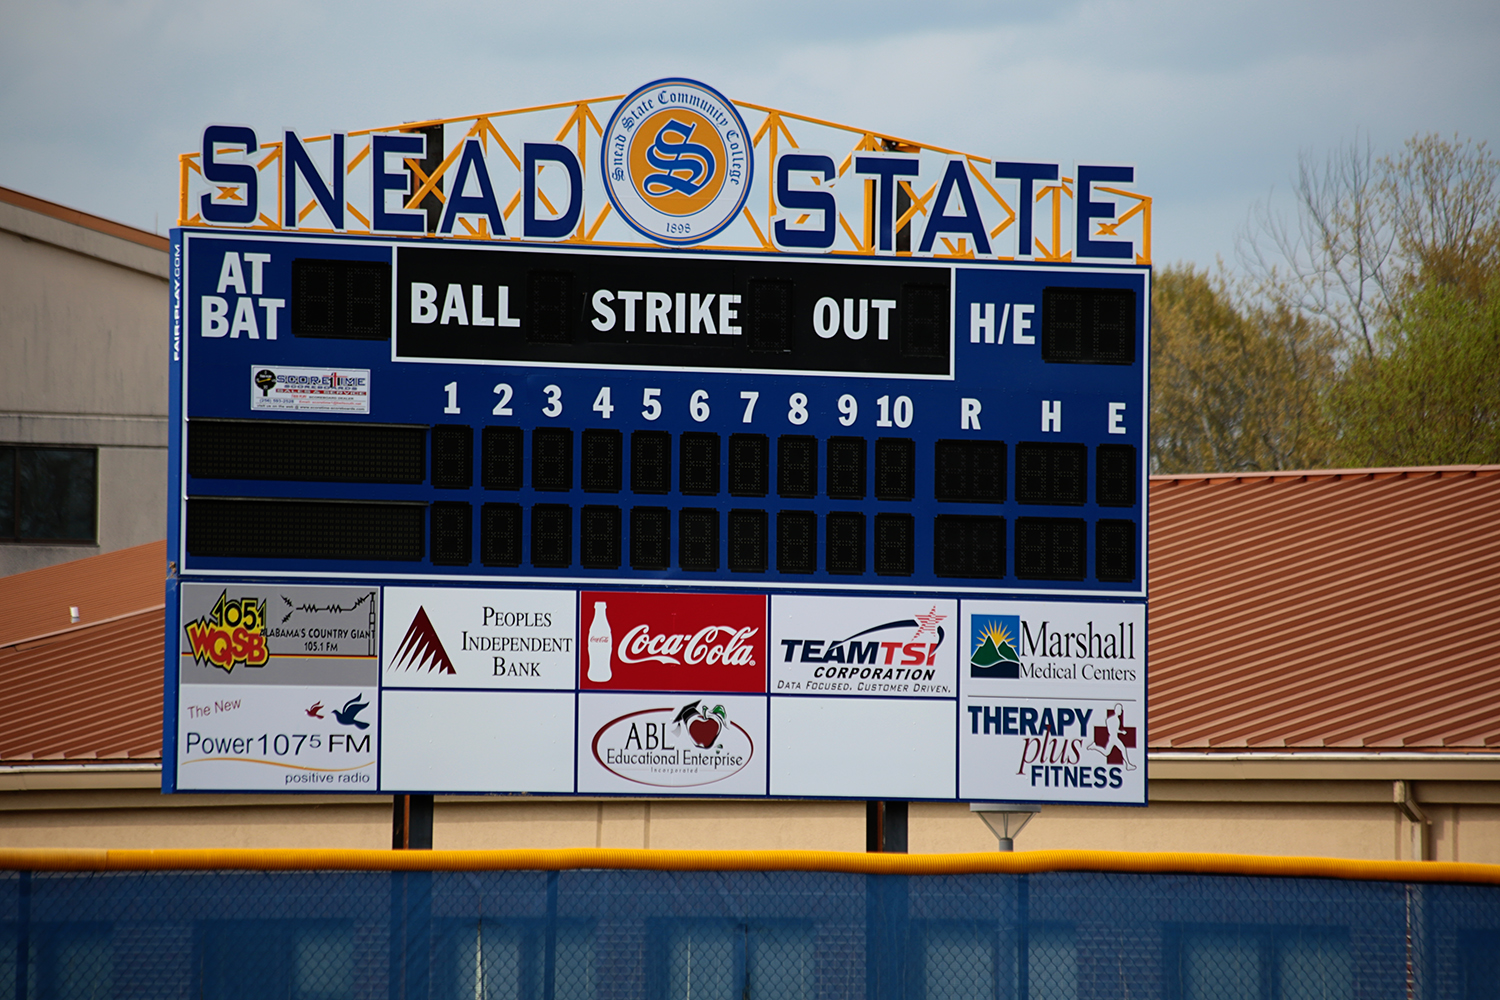 the scoreboard at the Snead State softball field